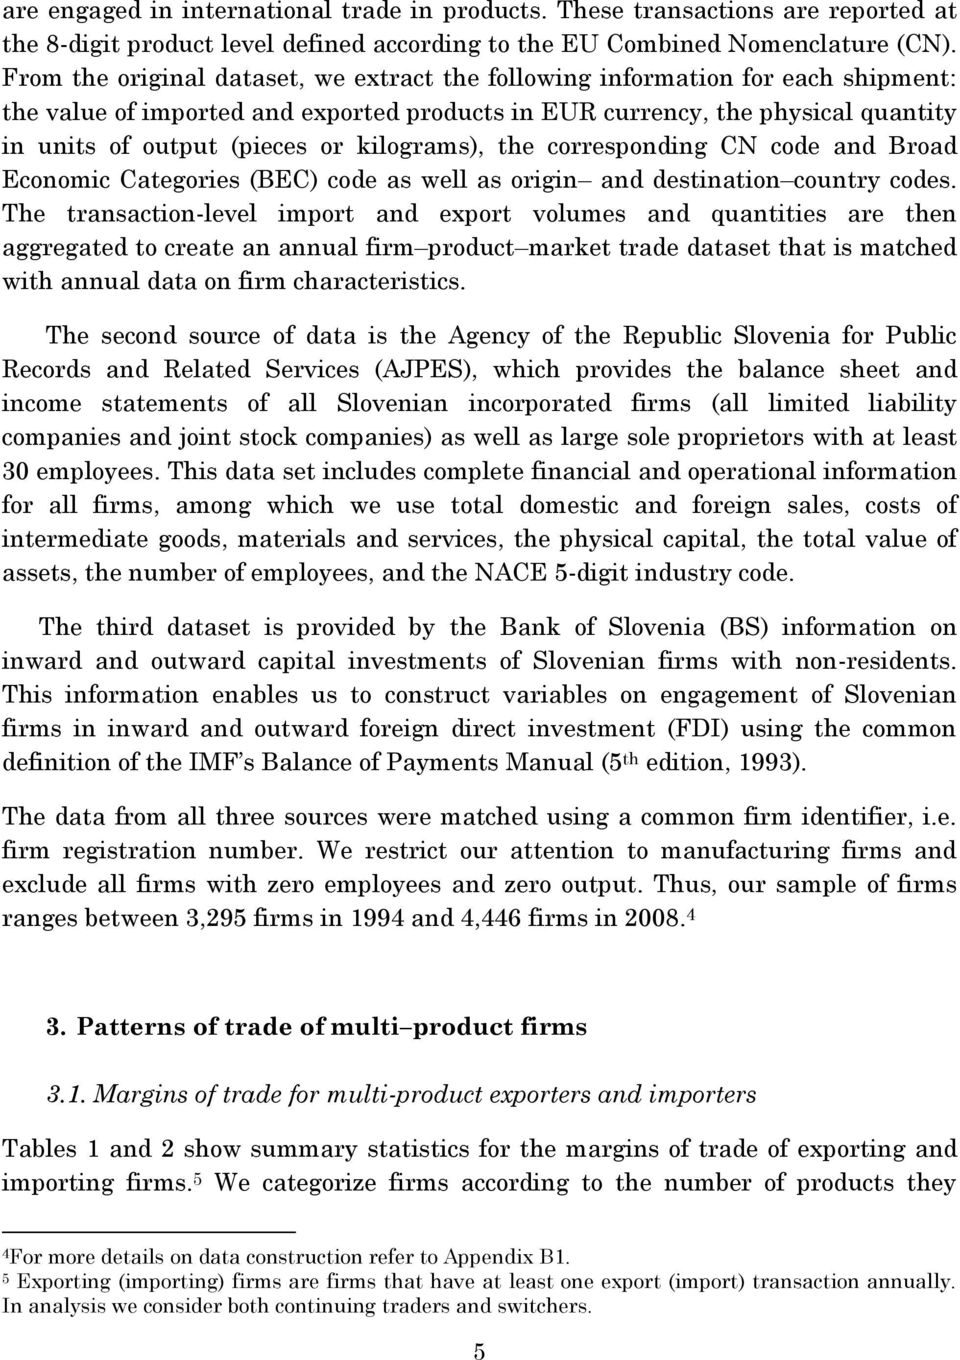 Working Paper Import Churning and Export Performance of Multi